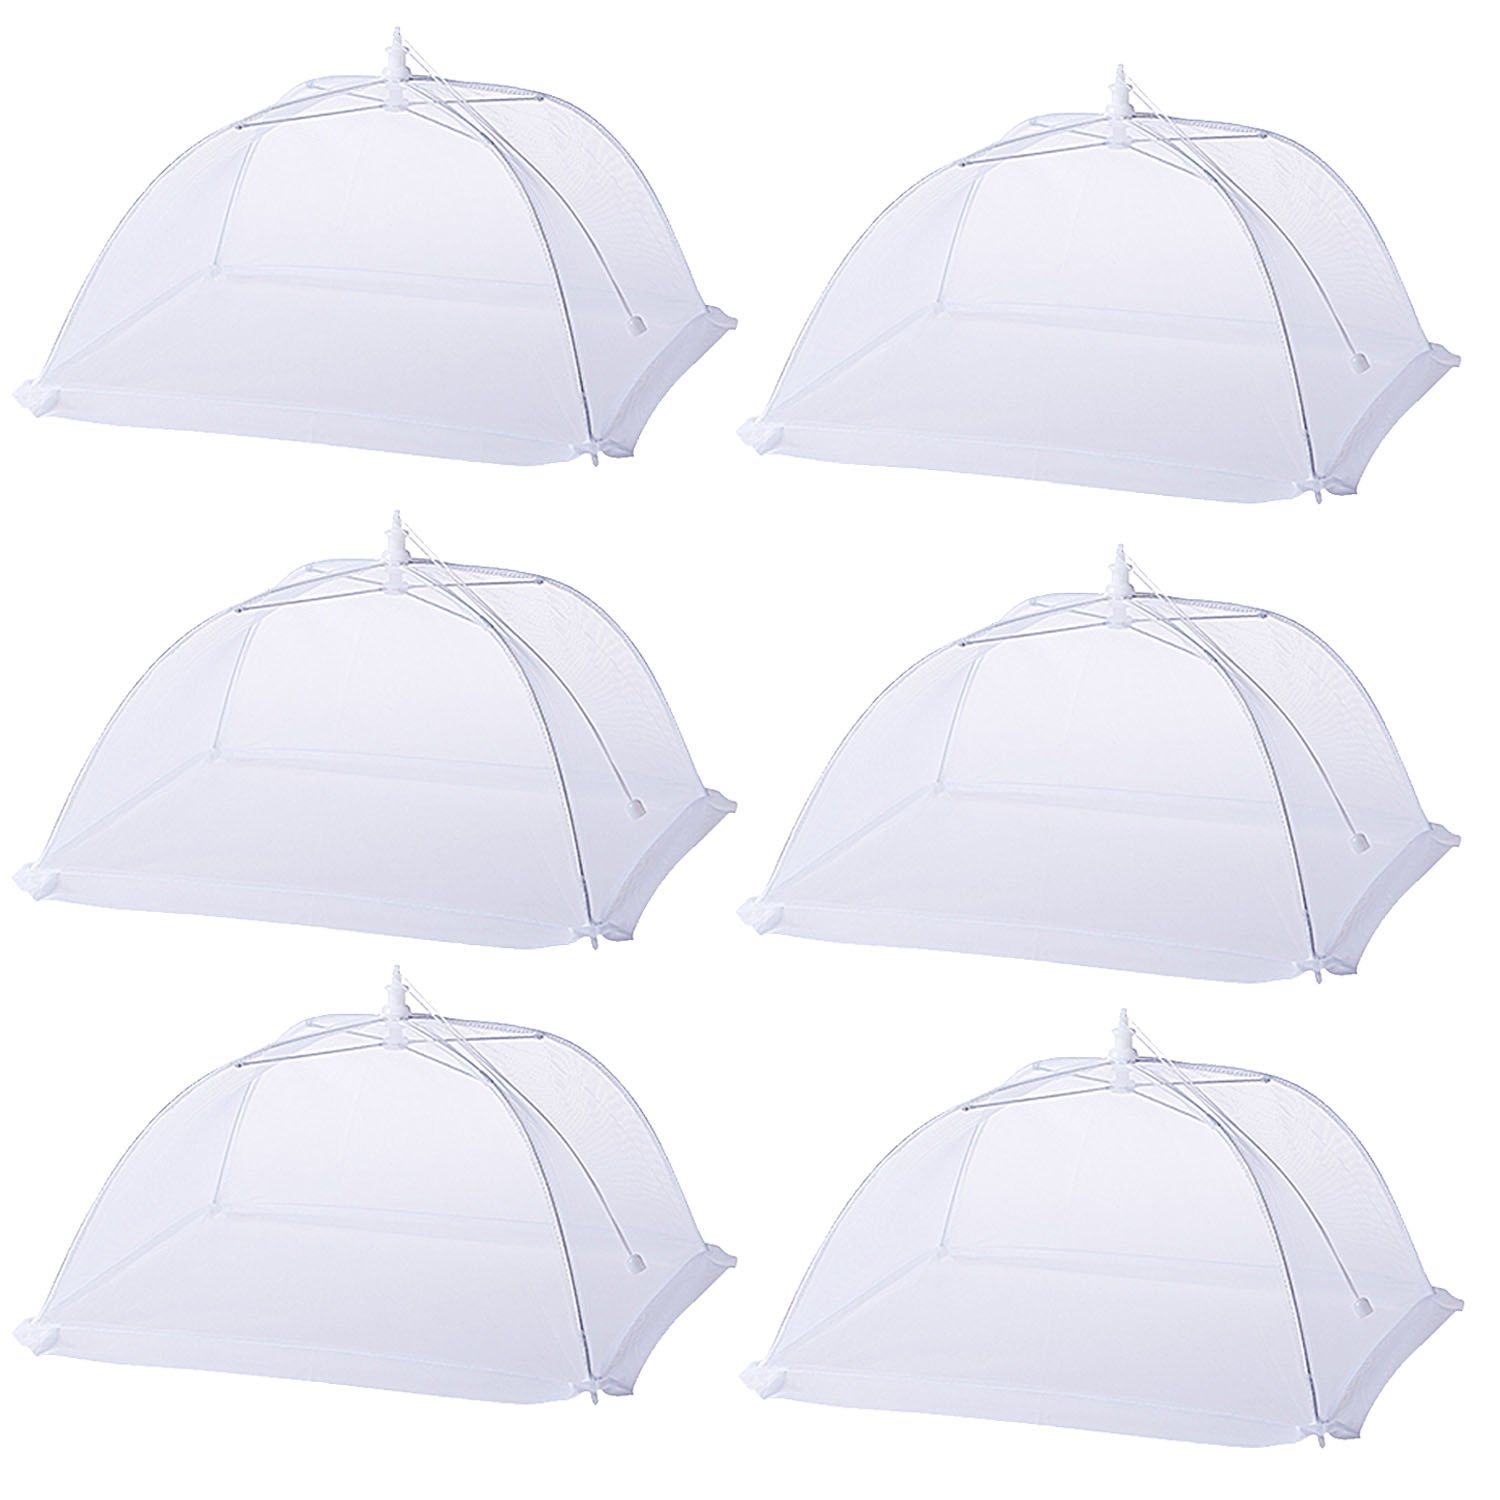 Higift (6 Pack) Large and Tall 17x17x11 Pop-Up Mesh Net Food Covers Tent Umbrella for Outdoors, Screen Fly Food Tents Protectors For Bugs, Parties Picnics, BBQs, Reusable and Collapsible